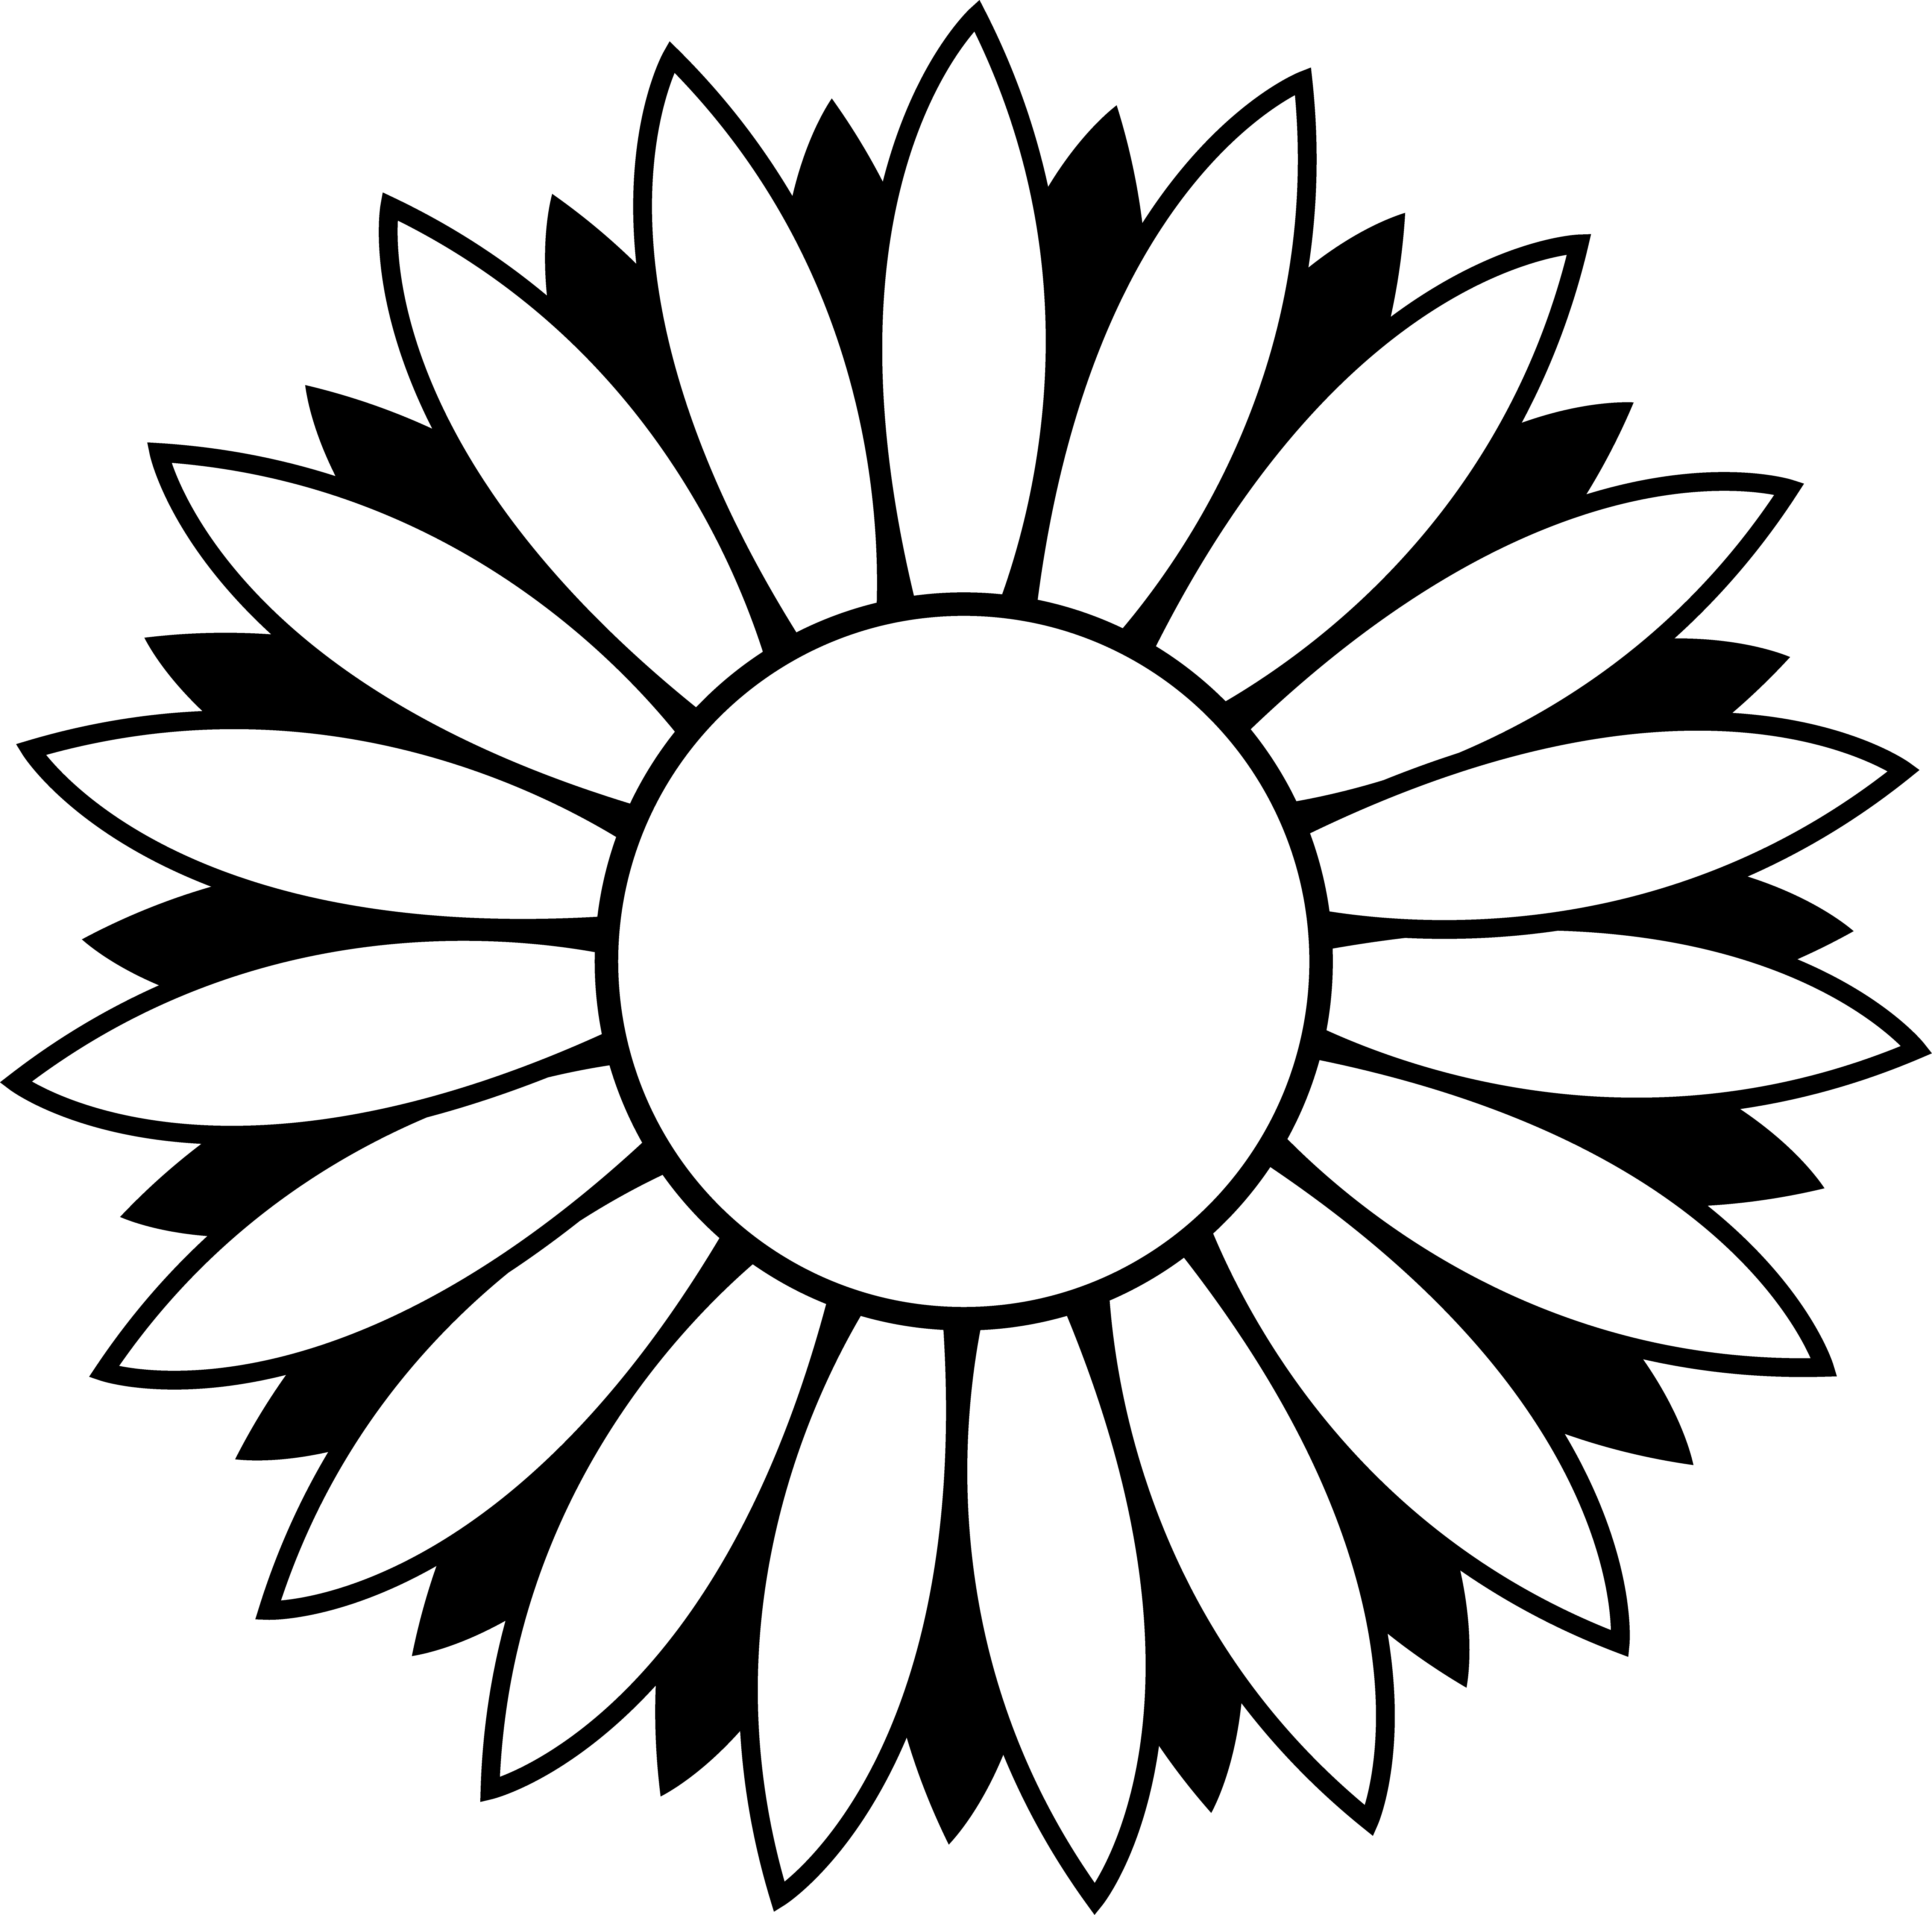 vector free stock Sunflower drawing at getdrawings. Lotus clipart black and white